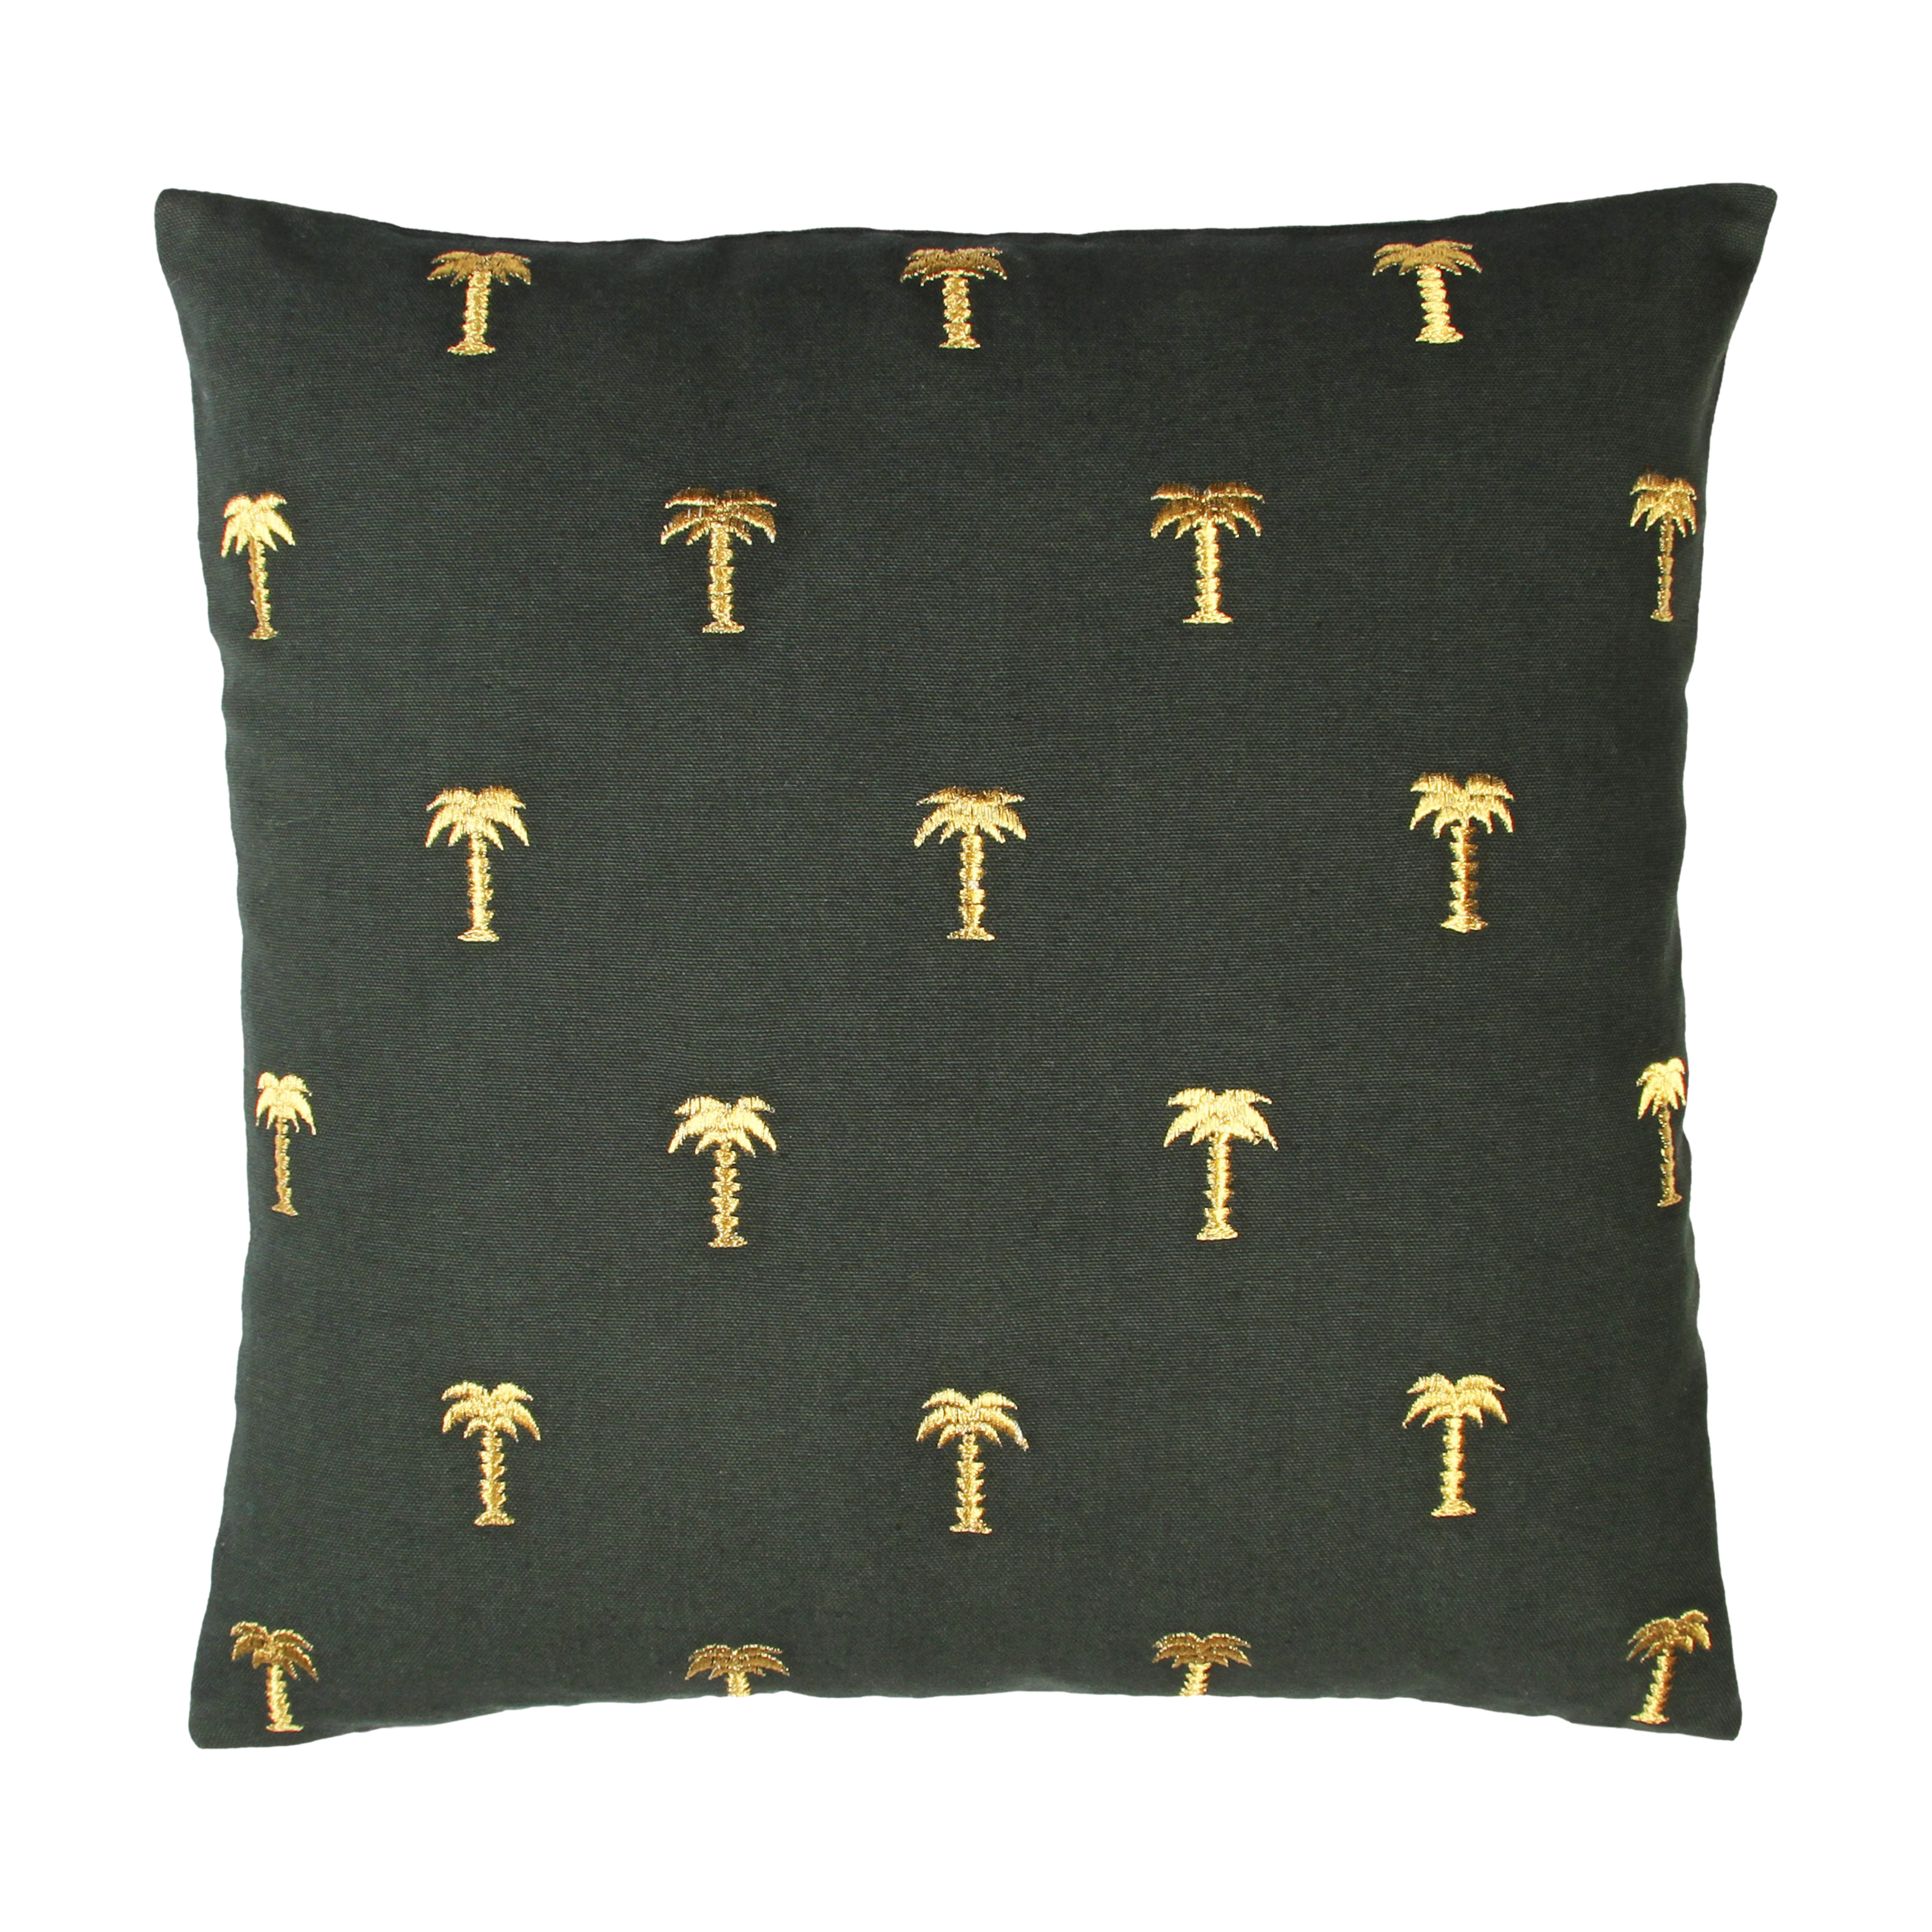 Decoration - Cushions & Poufs - Palmier Cushion - / 40 x 40 cm by & klevering - Palm tree / Dark green & gold -  Plumes, Cotton, Lurex